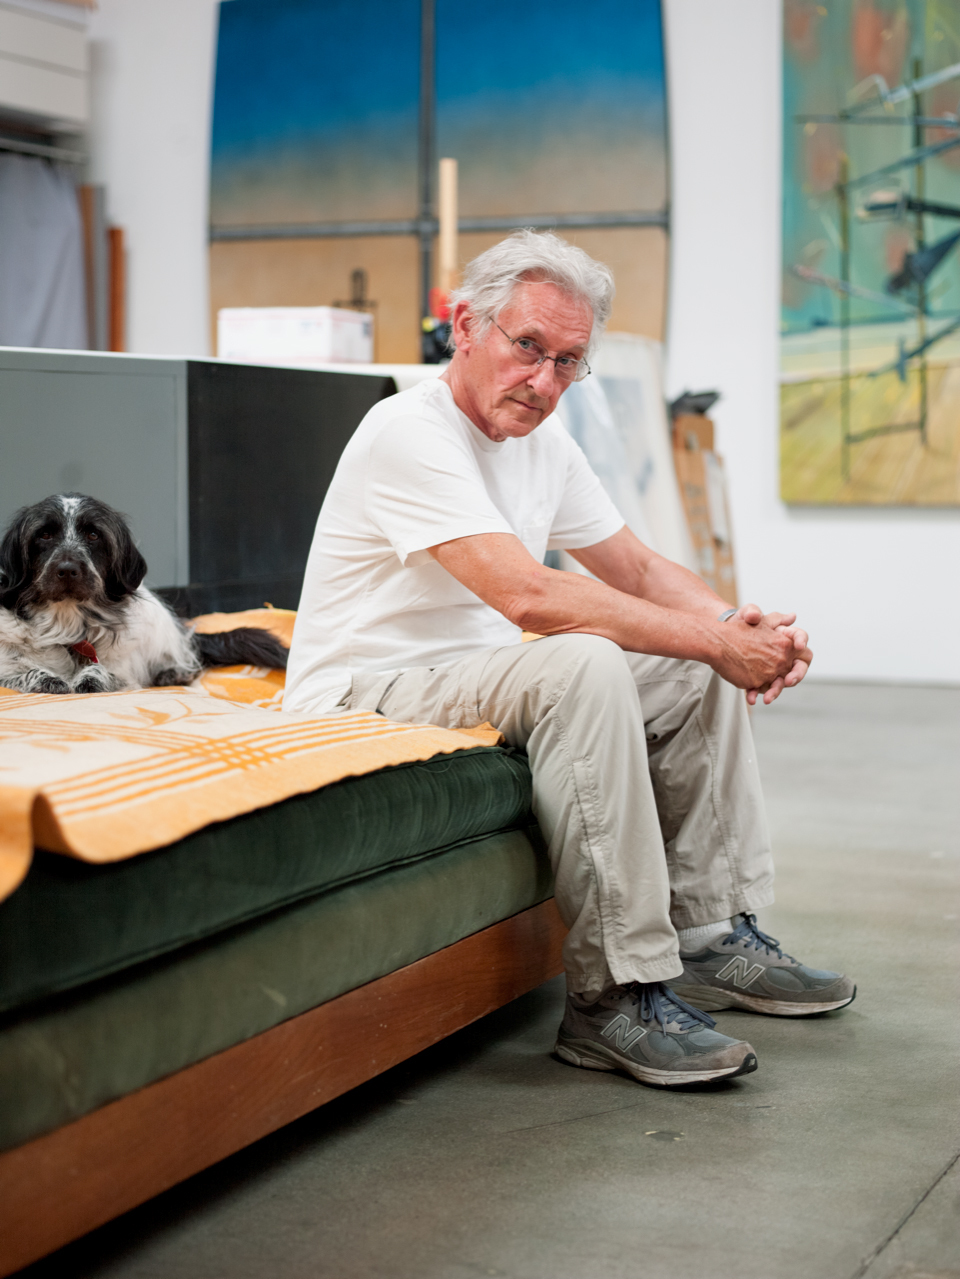 A white-haired man in casual clothes sits on a green couch with a black and white dog